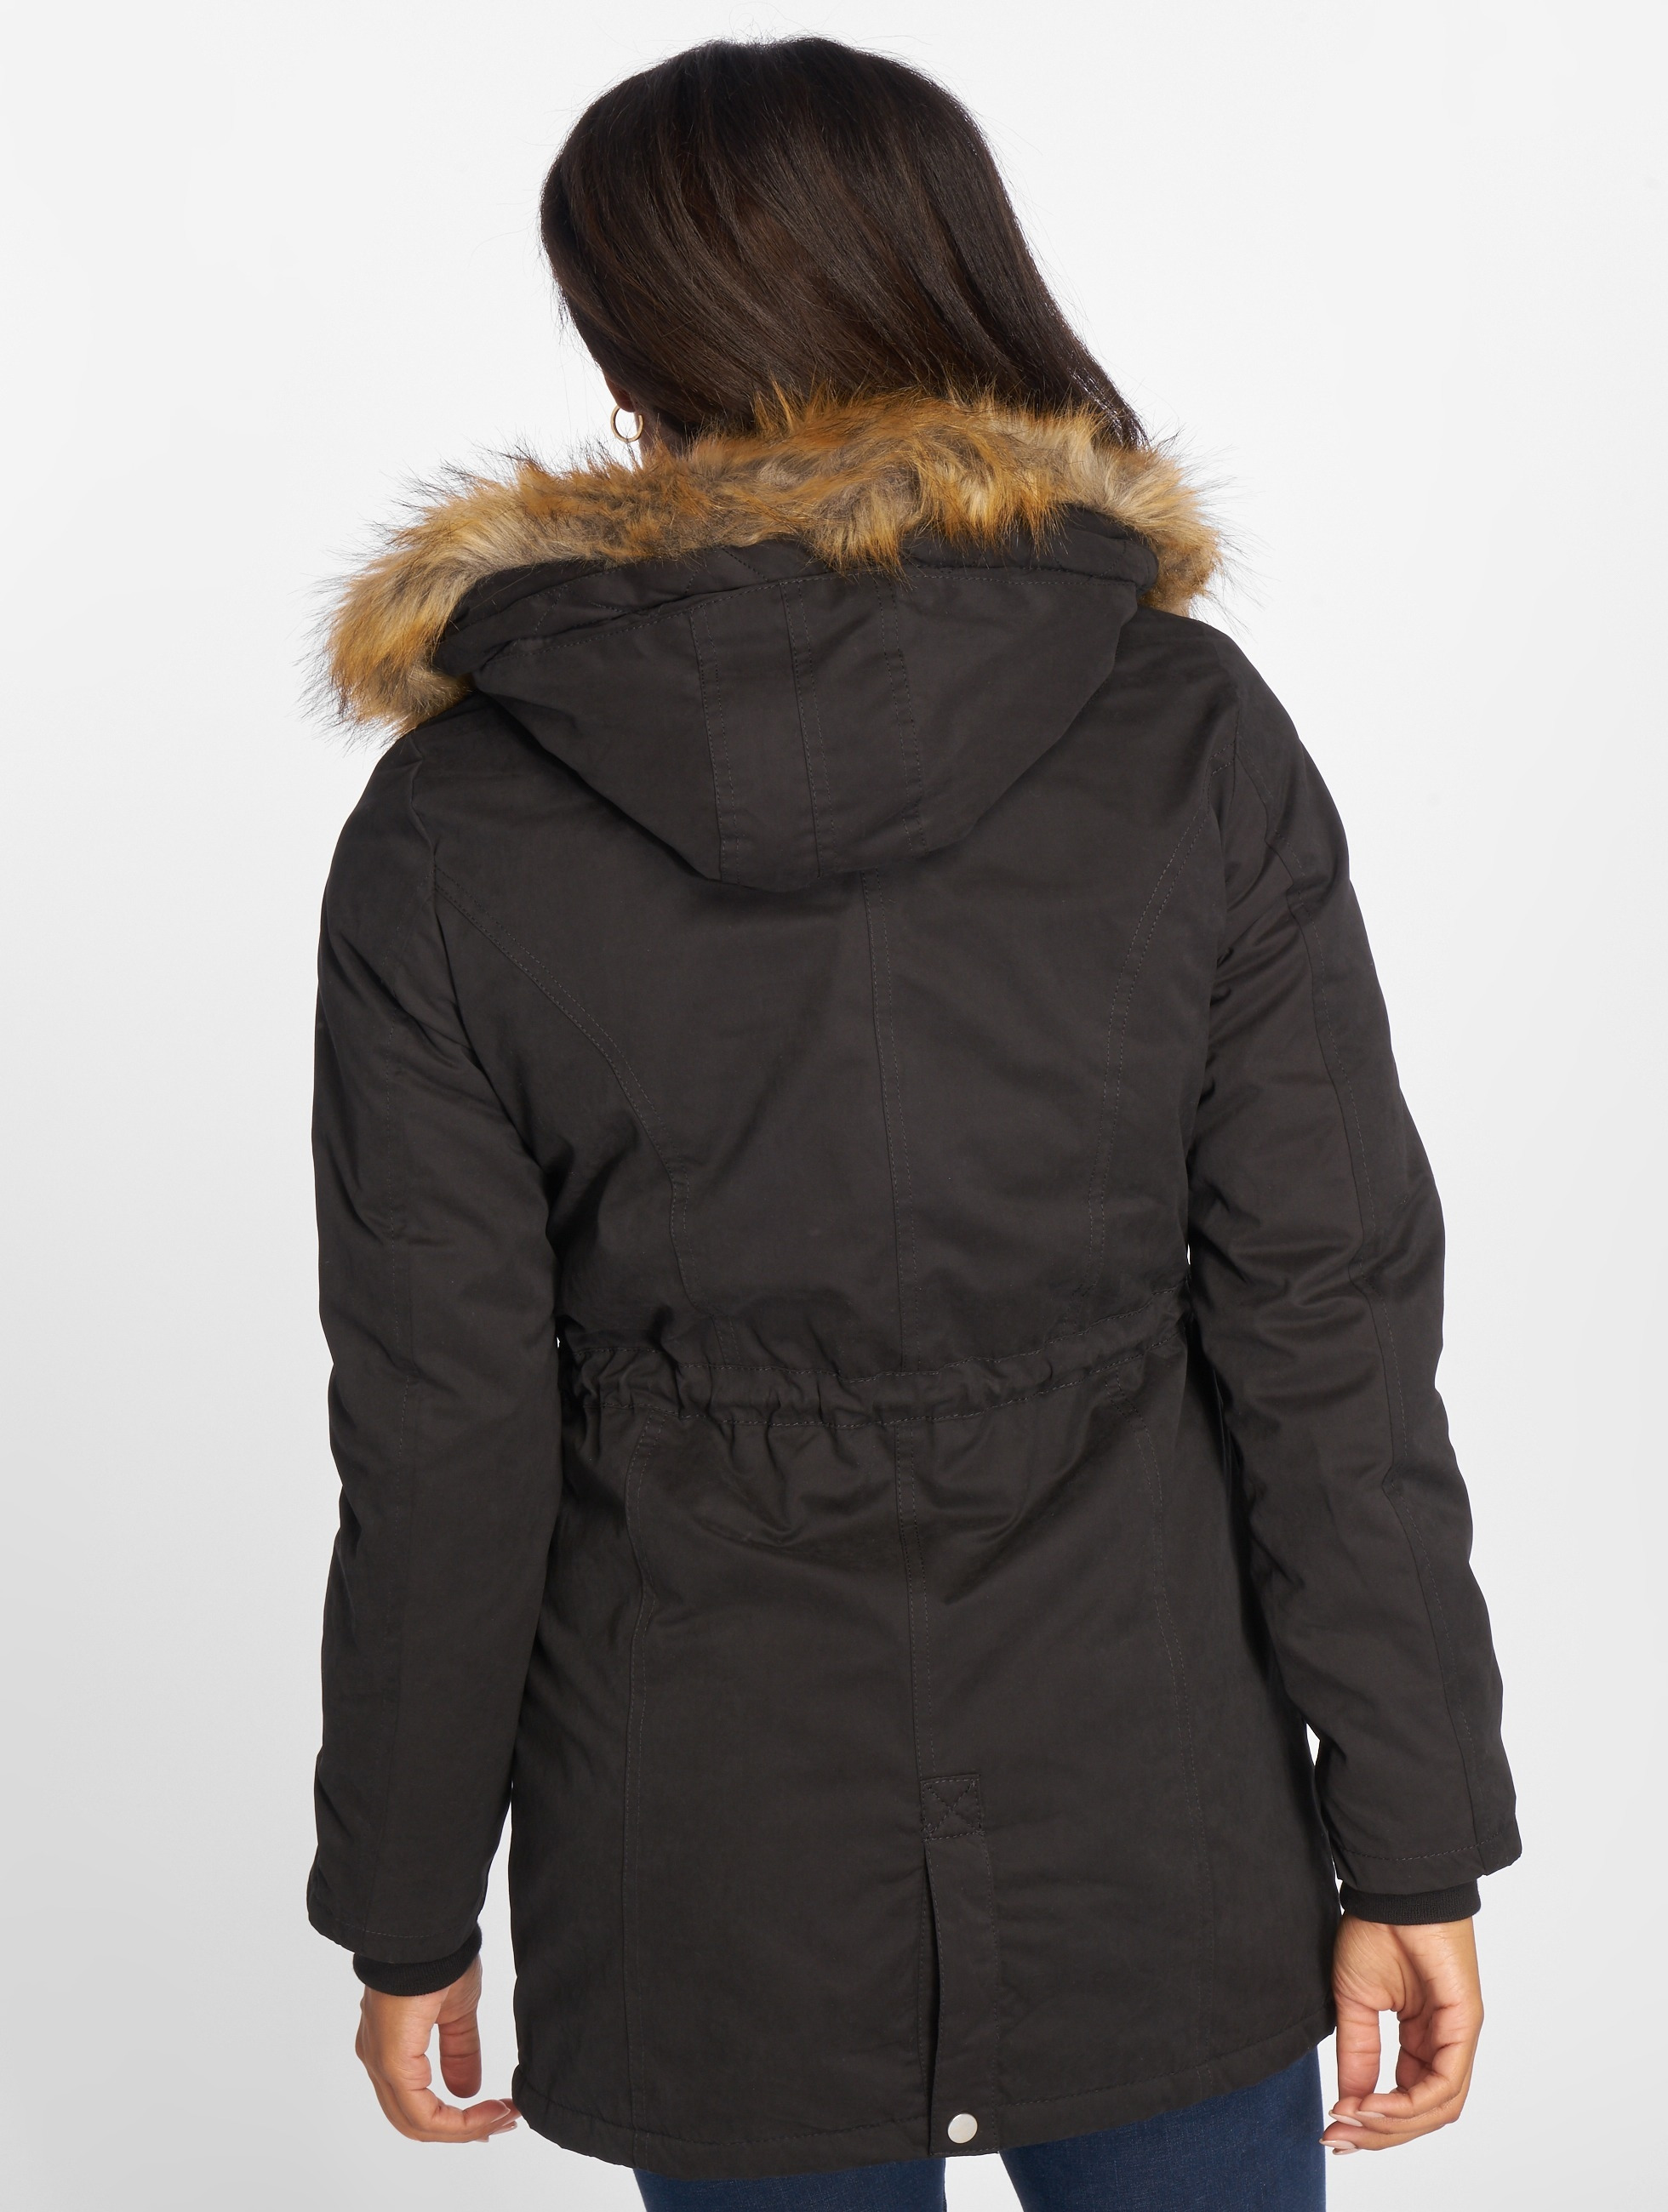 Urban-Classics-Donne-Giacche-Giacca-invernale-Ladies-Sherpa-Lined-Peached